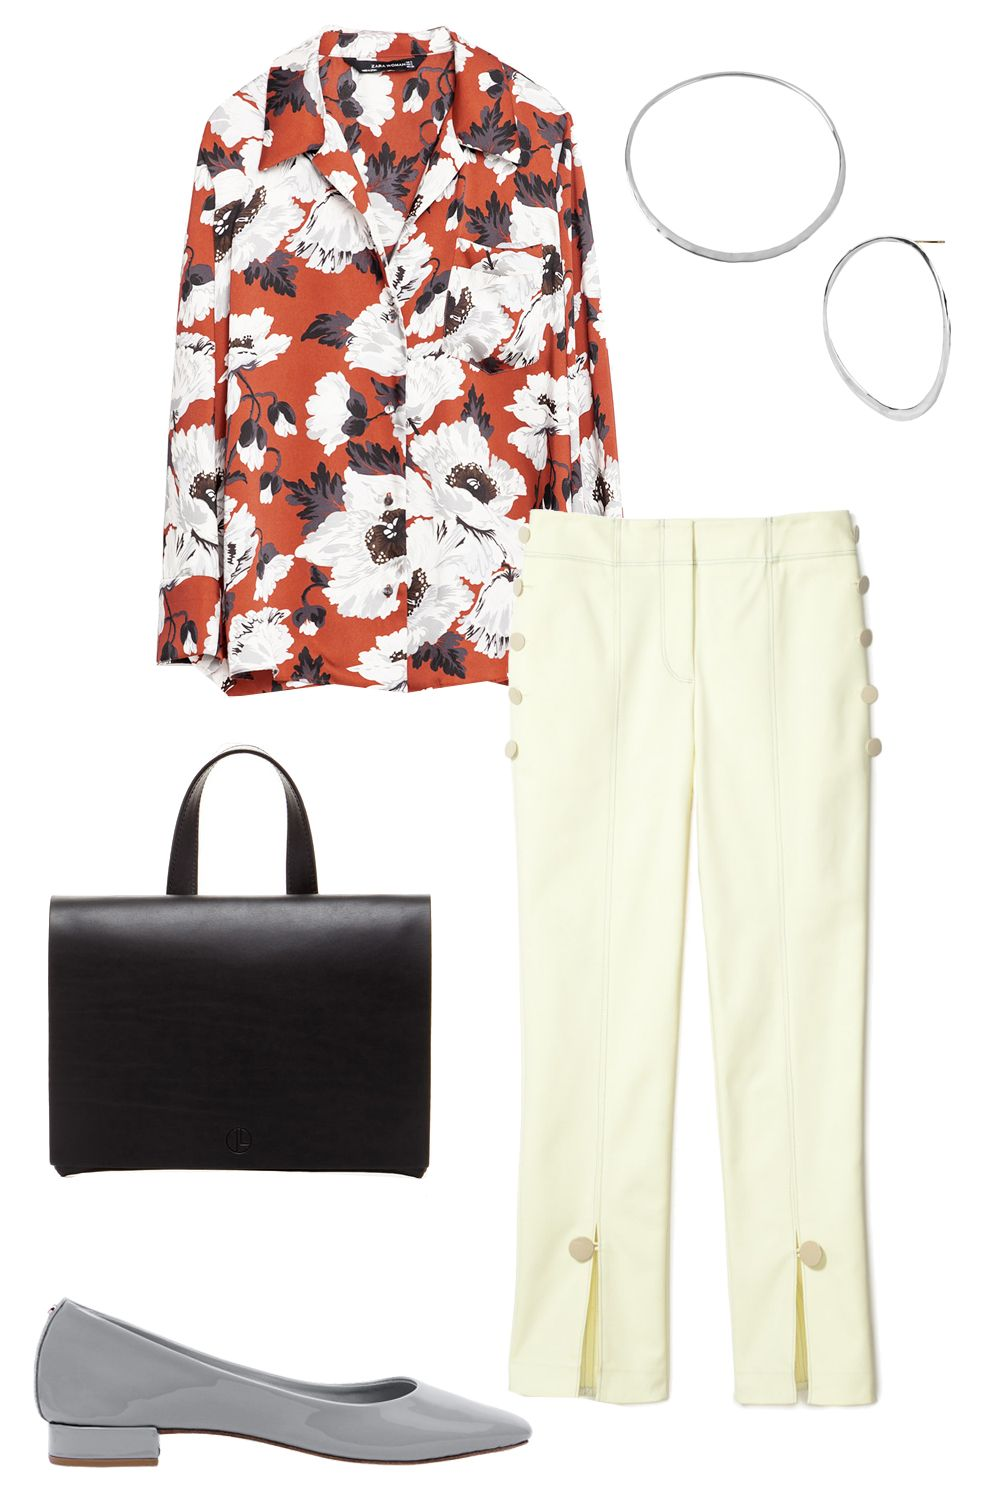 "<p>Cropped slacks and a button down is a classic combo for the workplace, so take the outfit to the next level with a printed pajama shirt and detailed trousers. Simple accessories like hoop earrings and ballet flats finish off your look.</p><p>Zara Printed Pajama Style Blouse, $70; <a href=""http://www.zara.com/us/en/woman/tops/florals/printed-pajama-style-blouse-c718513p3305079.html"" target=""_blank"">zara.com</a></p><p>Robert Lee Morris 3"" Forward Facing Hoop, $300; <a href=""http://www.robertleemorris.com/Product/1113?dept=1047#.Vt7OQZM3jA4"" target=""_blank"">robertleemorris.com</a></p><p>Trademark Front Slit Pant, $348; <a href=""http://www.trade-mark.com/front-slit-pant.html?___store=default"" target=""_blank"">trade-mark.com</a></p><p>Repetto Danse Ballerina, $340; <a href=""http://www.repetto.com/us/danse-ballerina-dove-grey-patent-leather-v1727v-1025.html"" target=""_blank"">repetto.com</a></p><p>Janessa Leone Grace Clutche, $230; <a href=""http://janessaleone.com/collections/leather-goods/products/grace"" target=""_blank"">janessaleone.com</a></p>"